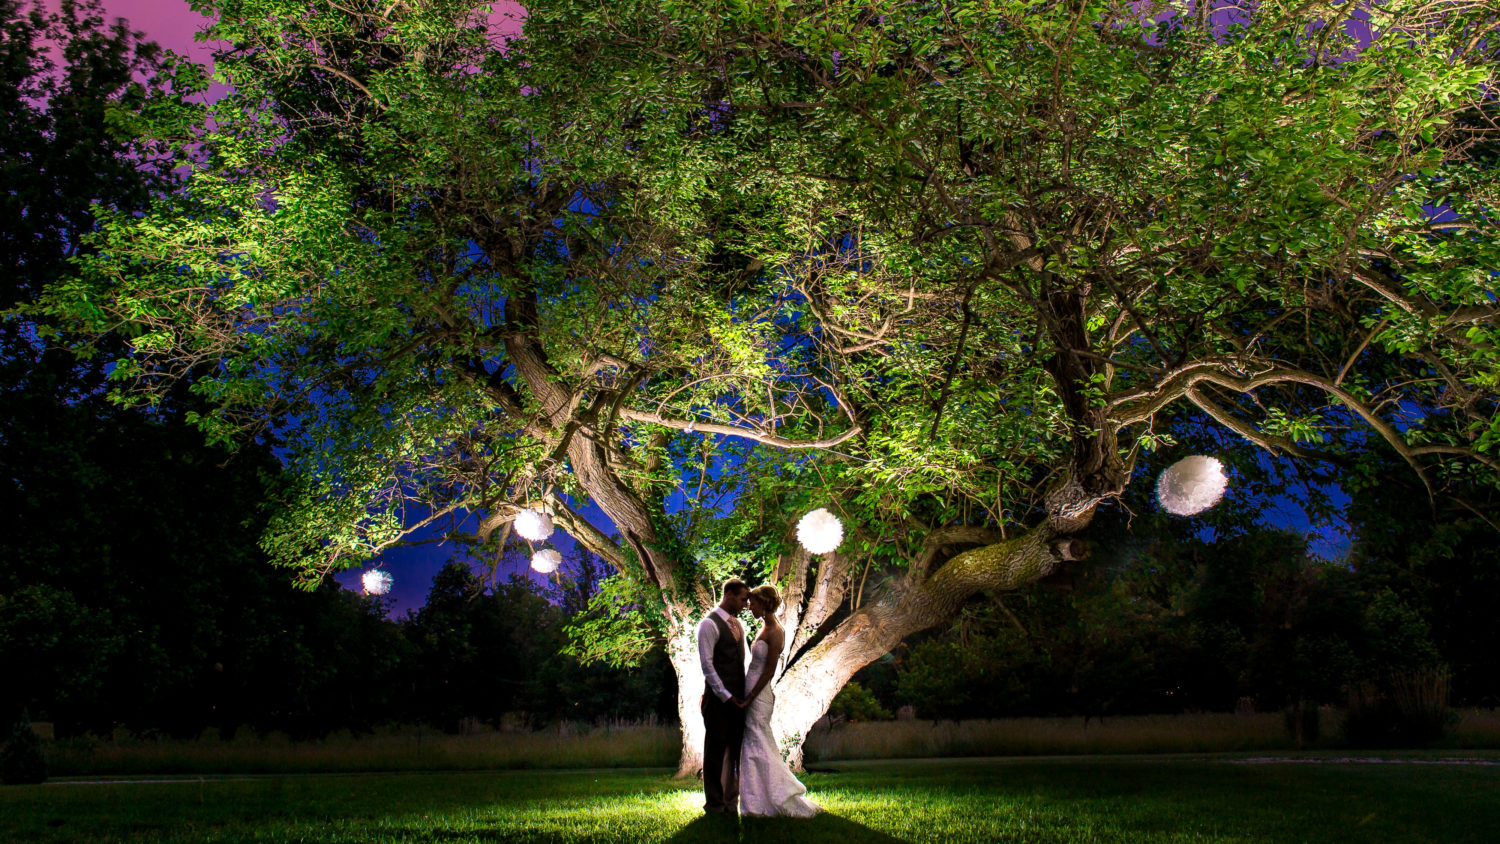 Lovely nighttime wedding portrait under a tree